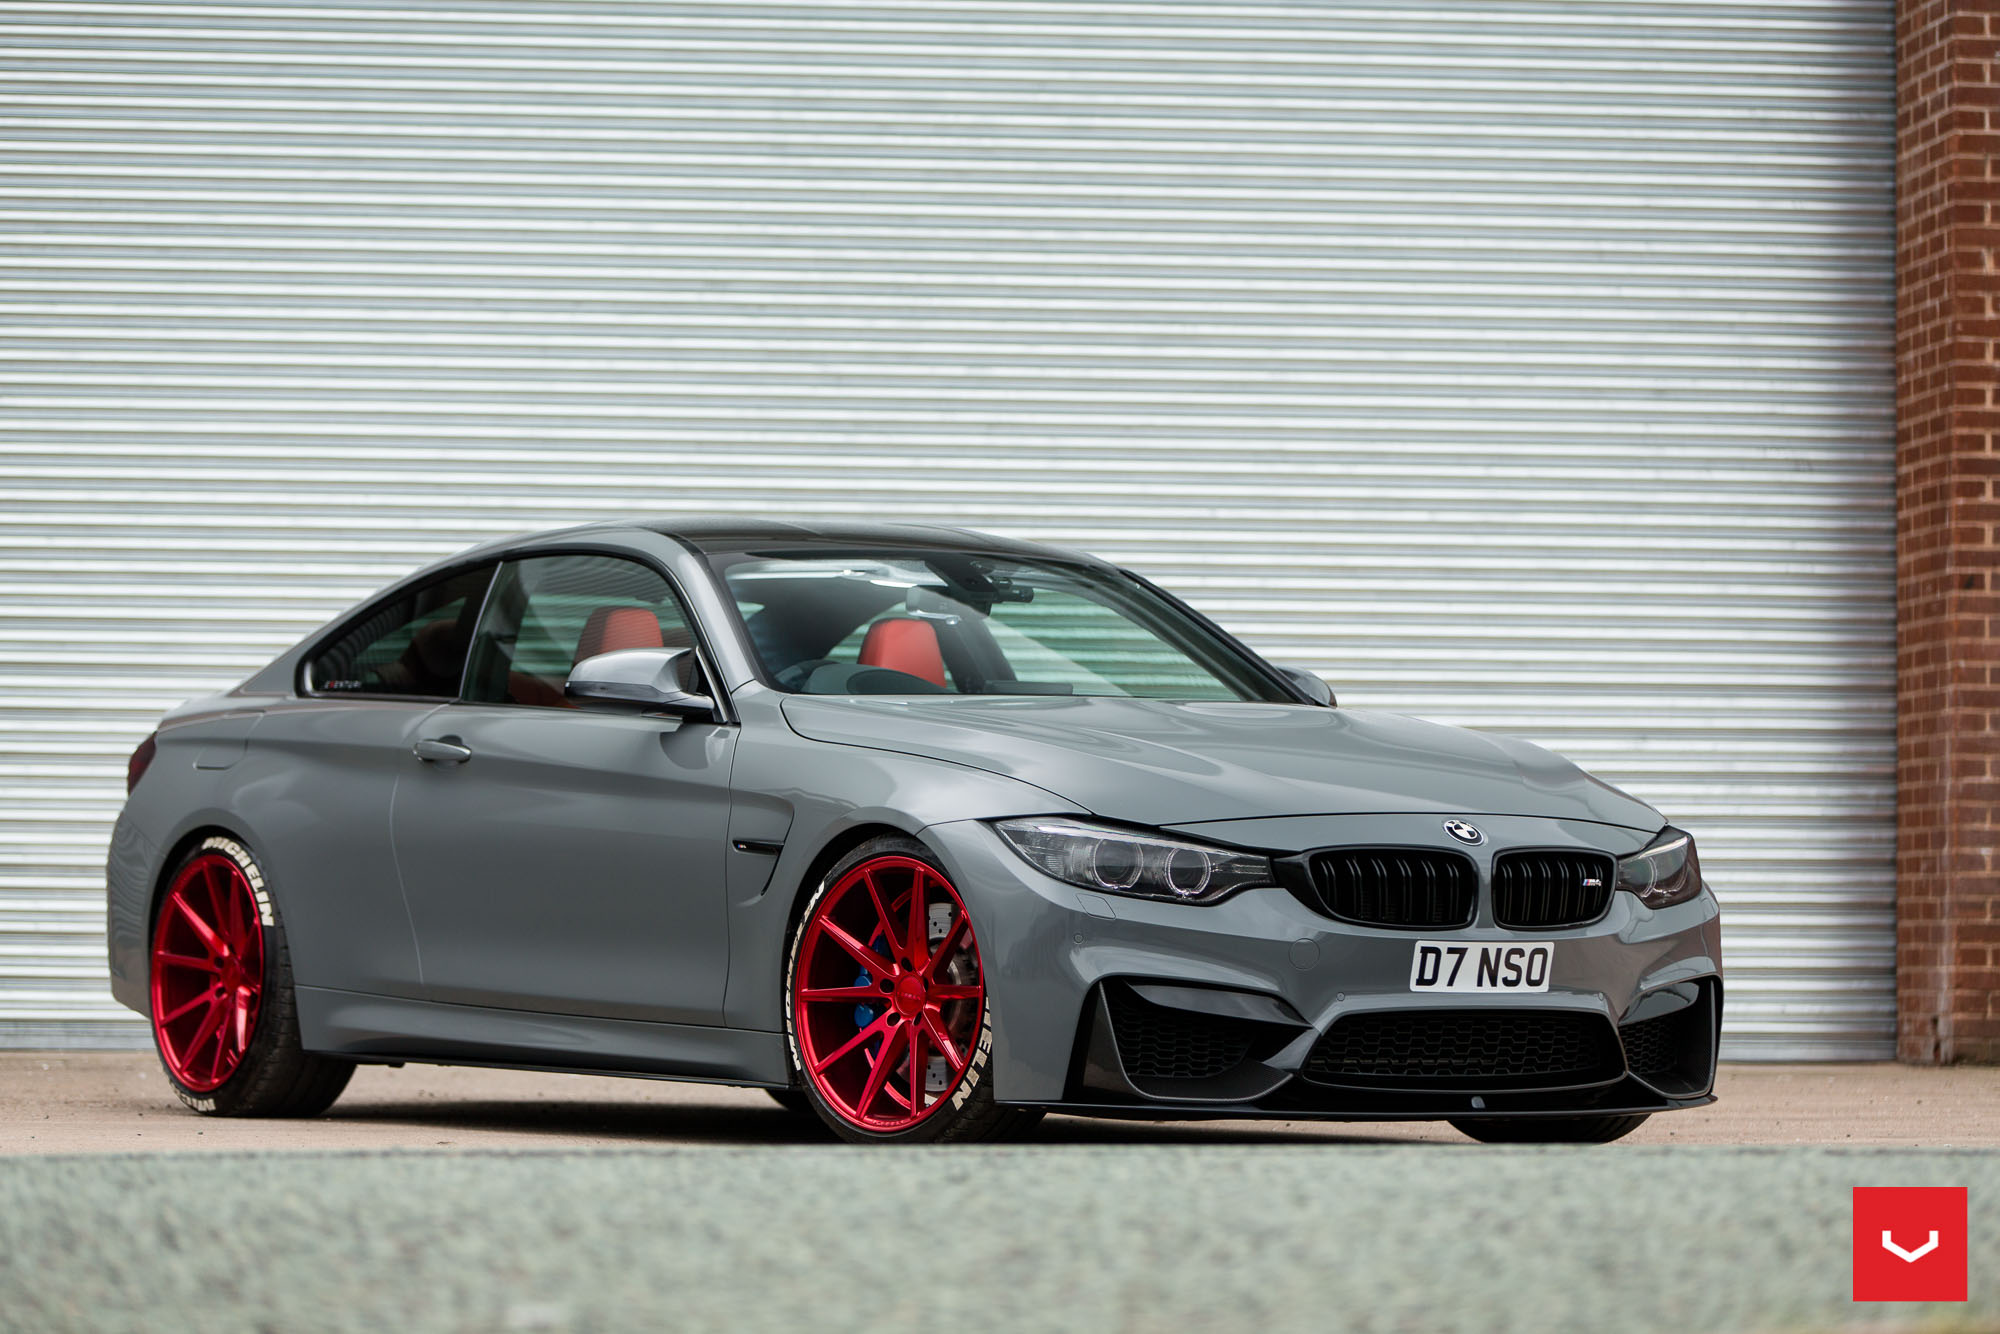 banner_BMW-M4-on-Vossen-VFS-1-Wheels-©-Vossen-Wheels-2016-1067-Edit.jpg